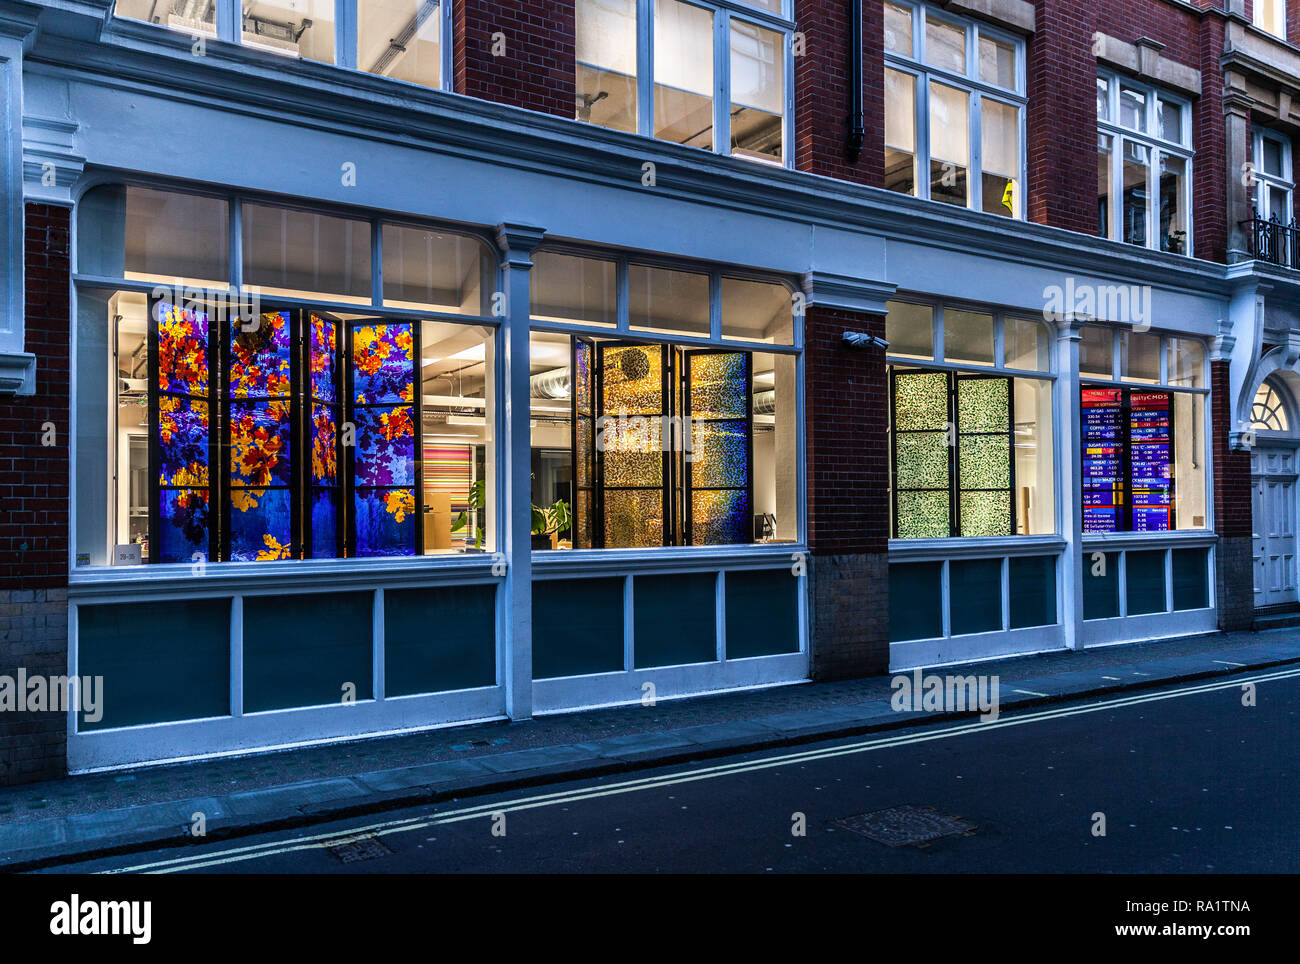 External colourful windows on a commercial premises, Soho, London, England, UK. - Stock Image